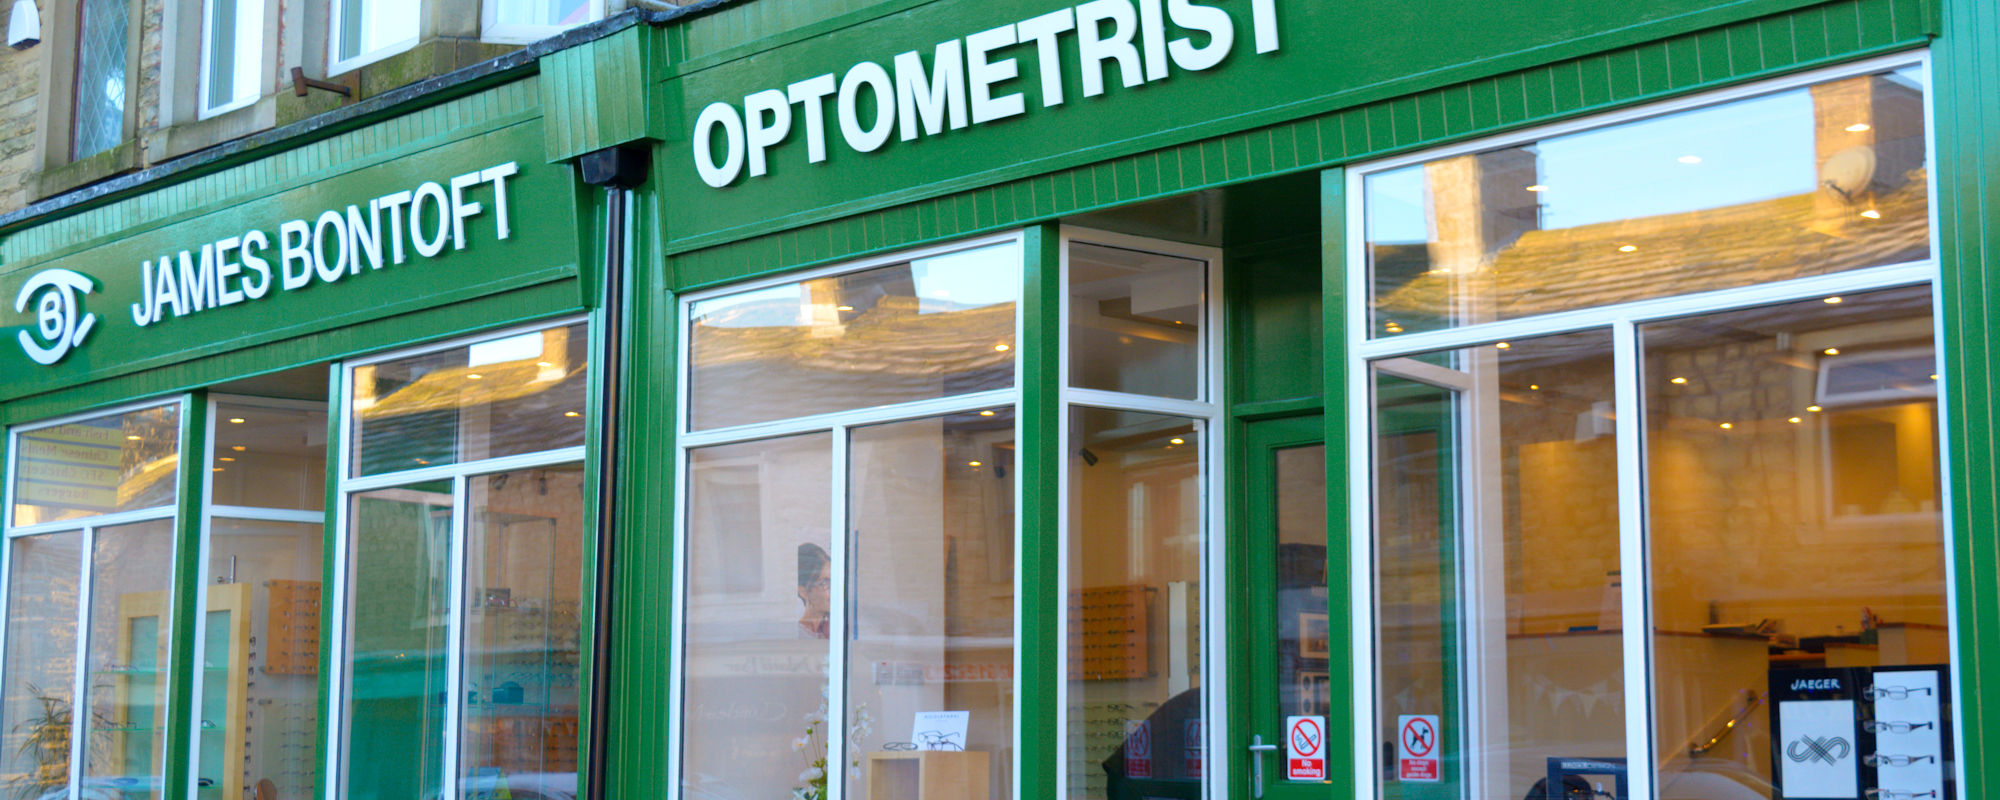 Kelbrook's local optician - James Bontoft in Barnoldswick